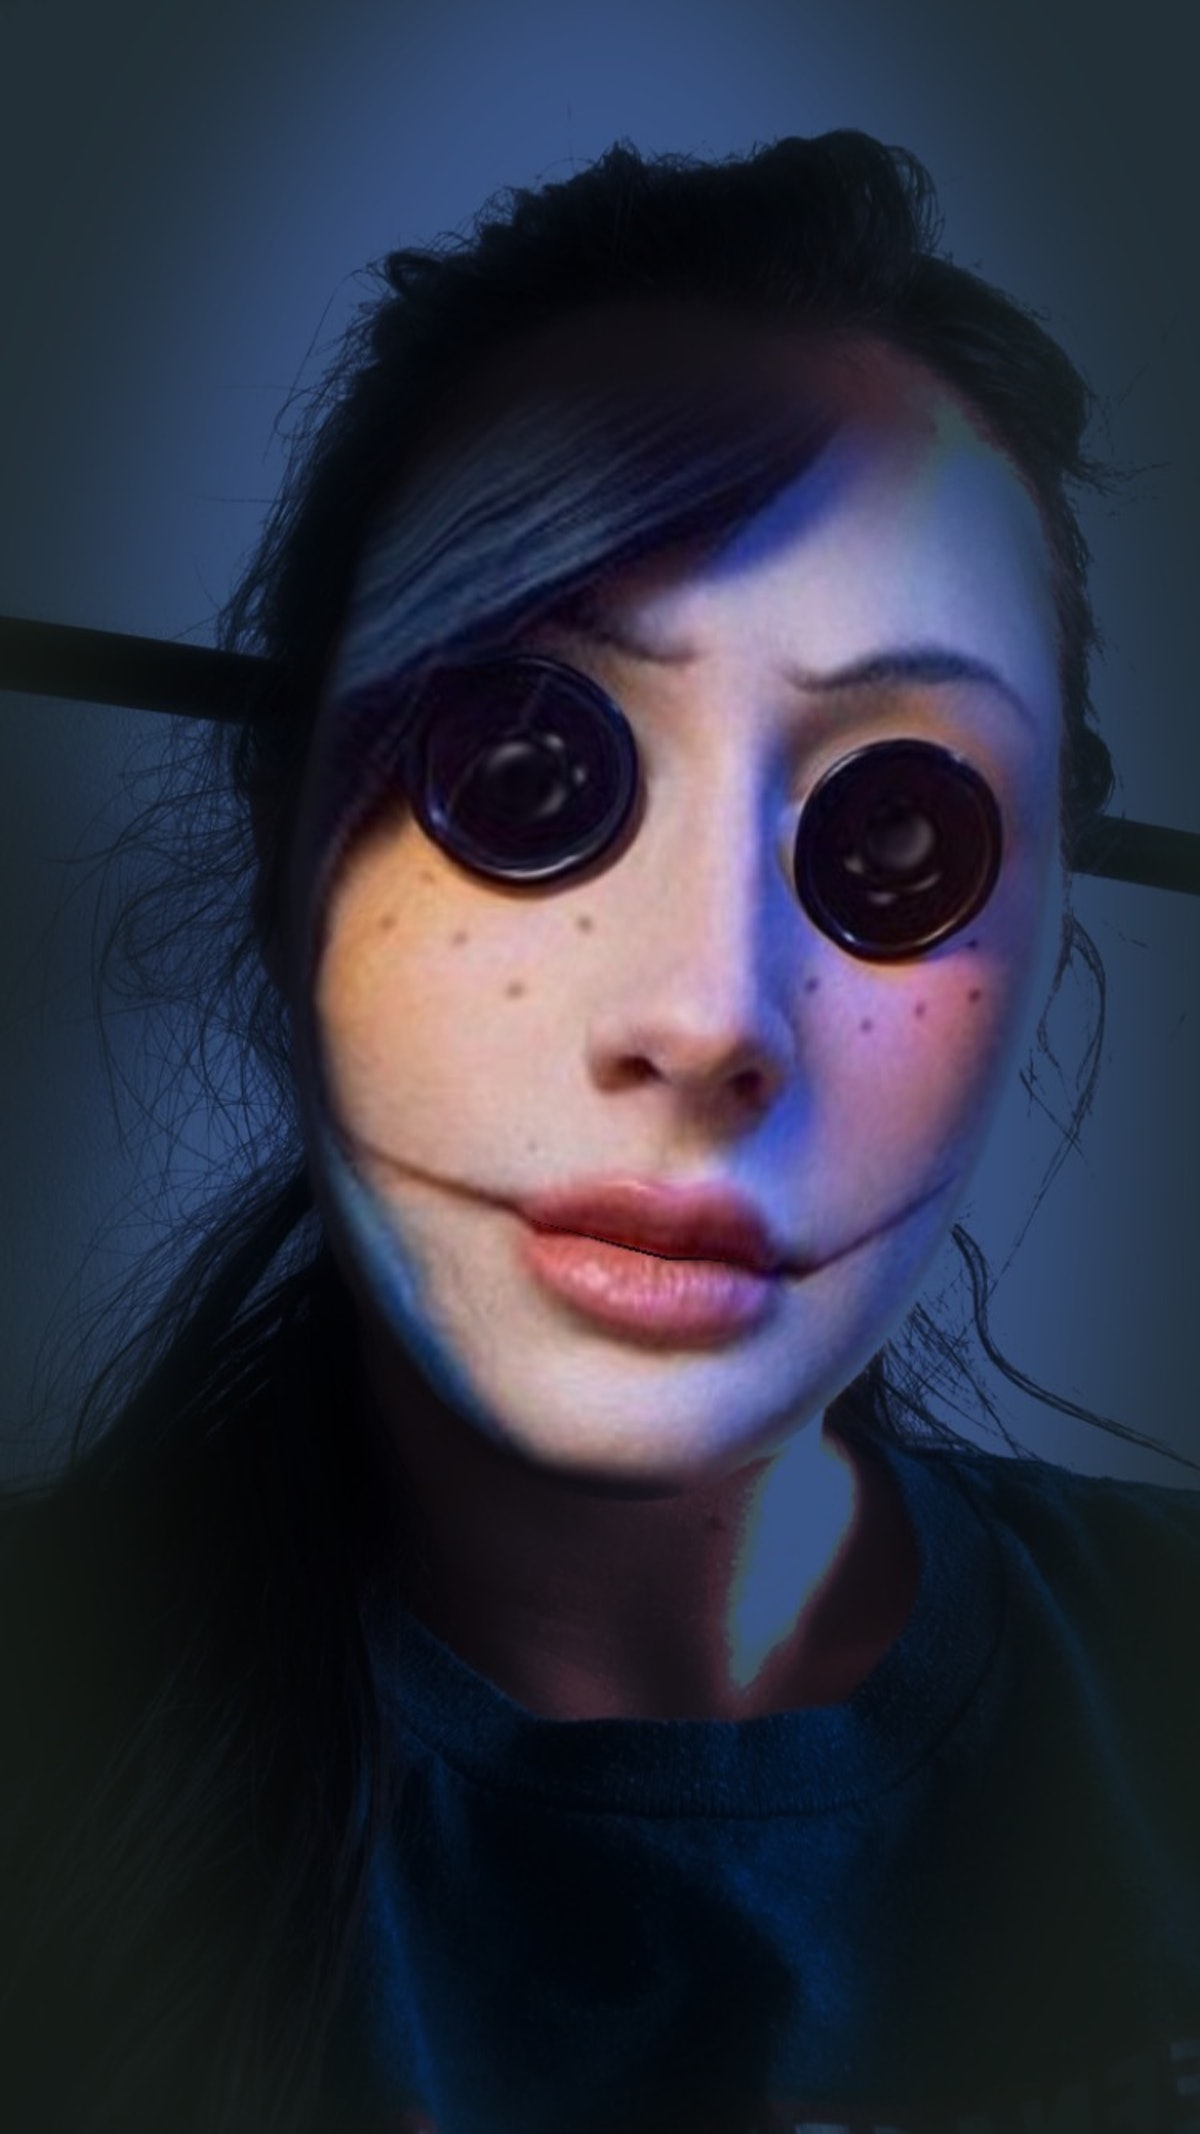 You can transform into characters from scary movies like 'Coraline' and 'It.'